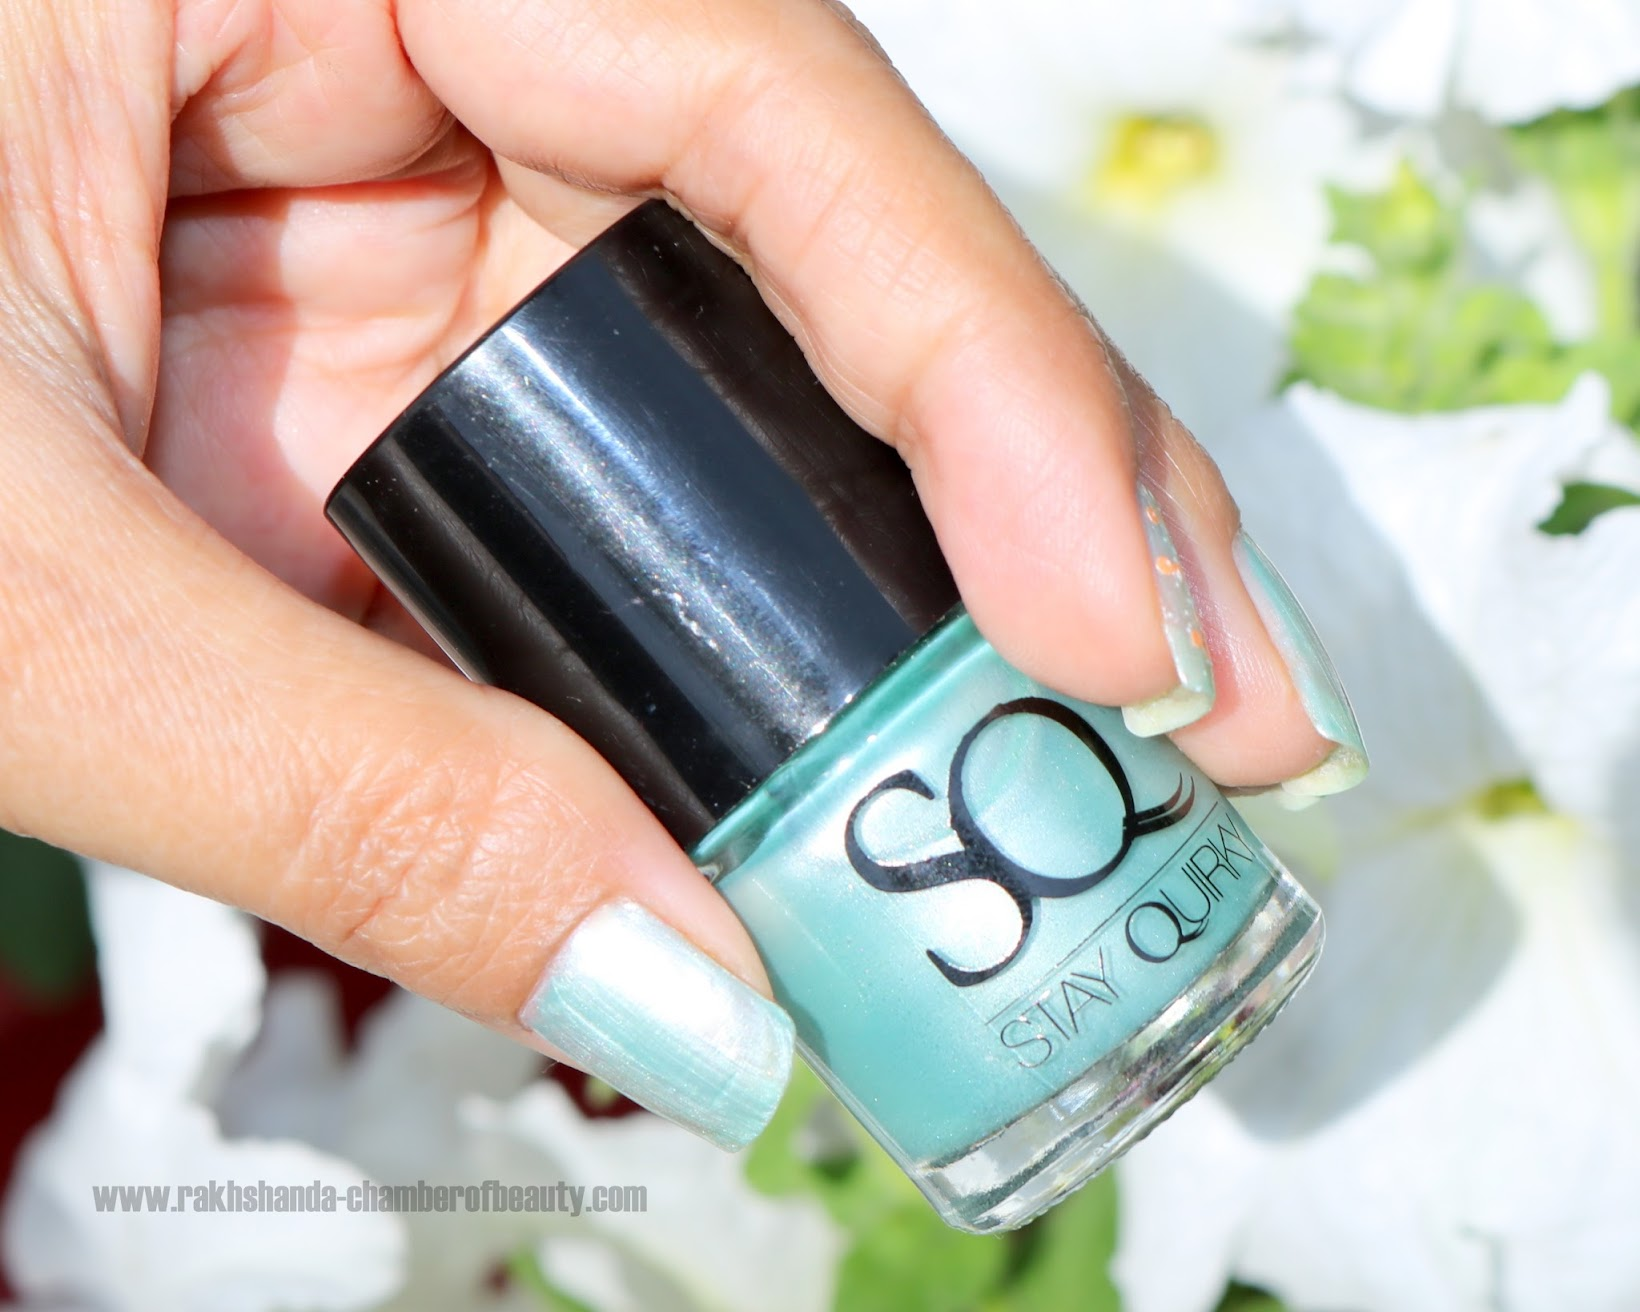 Stay Quirky Nail colours review, price, Spring/summer nails, Indian beauty blogger